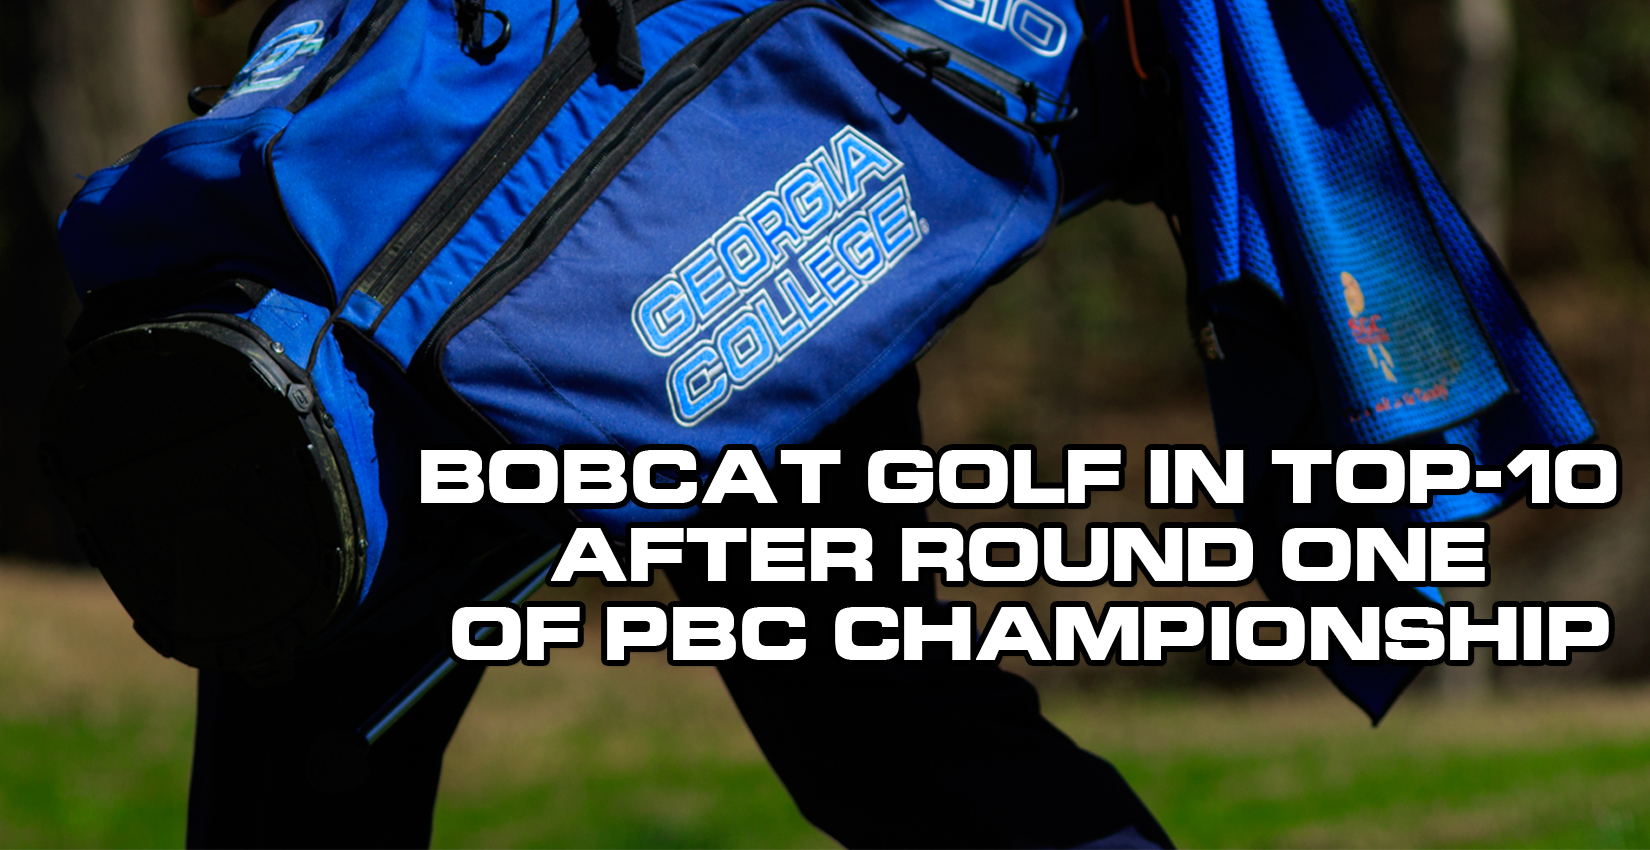 Bobcat Golf in Top-10 after Round One of PBC Championship